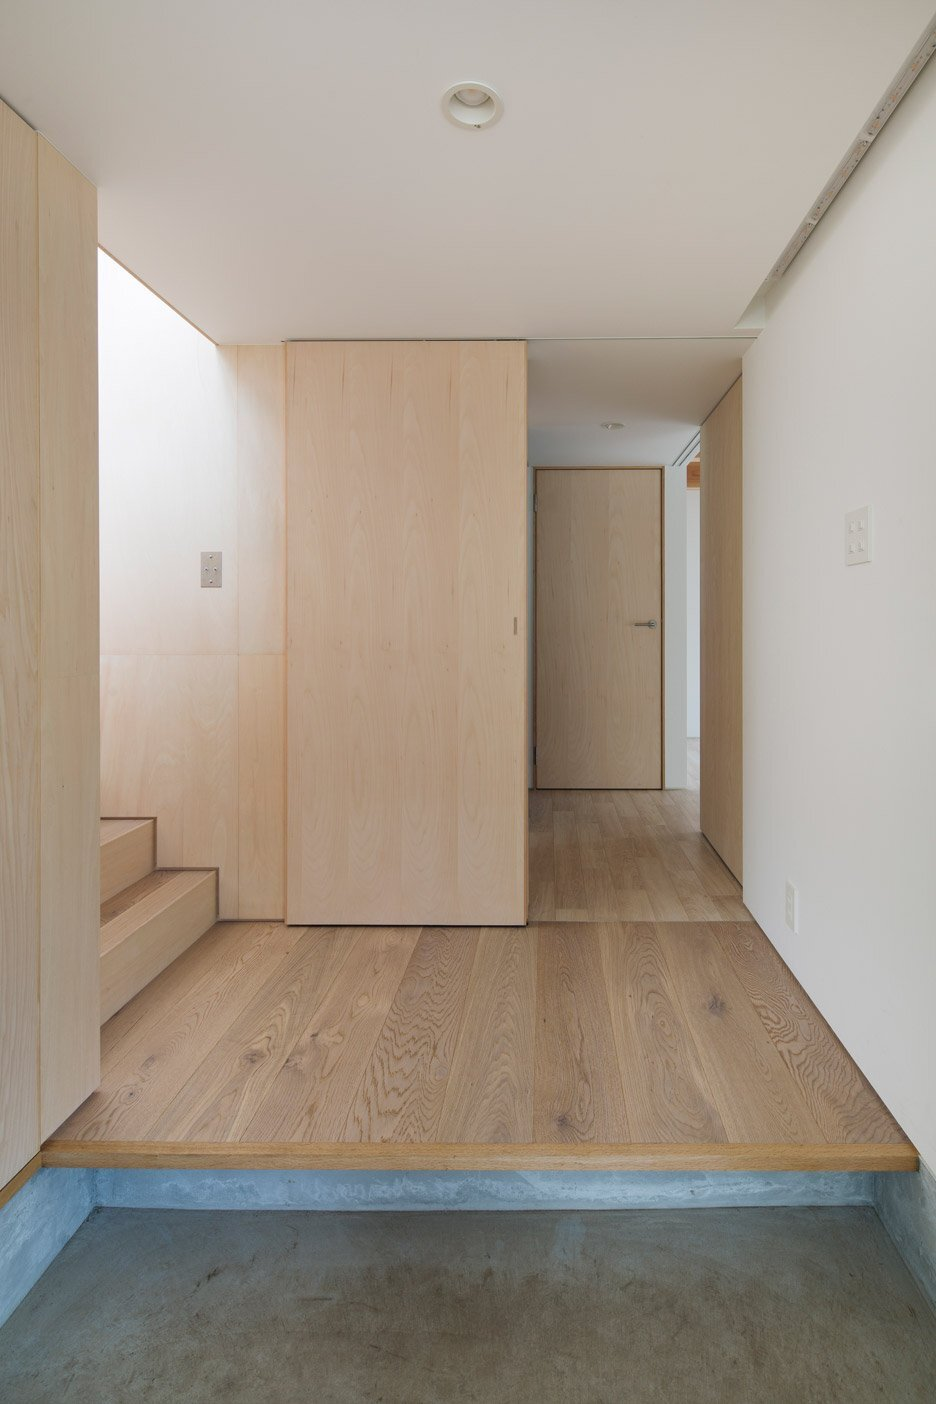 Module Grid House - Tetsuo Yamaji Architects - Kanto Japan - Entry - Humble Homes